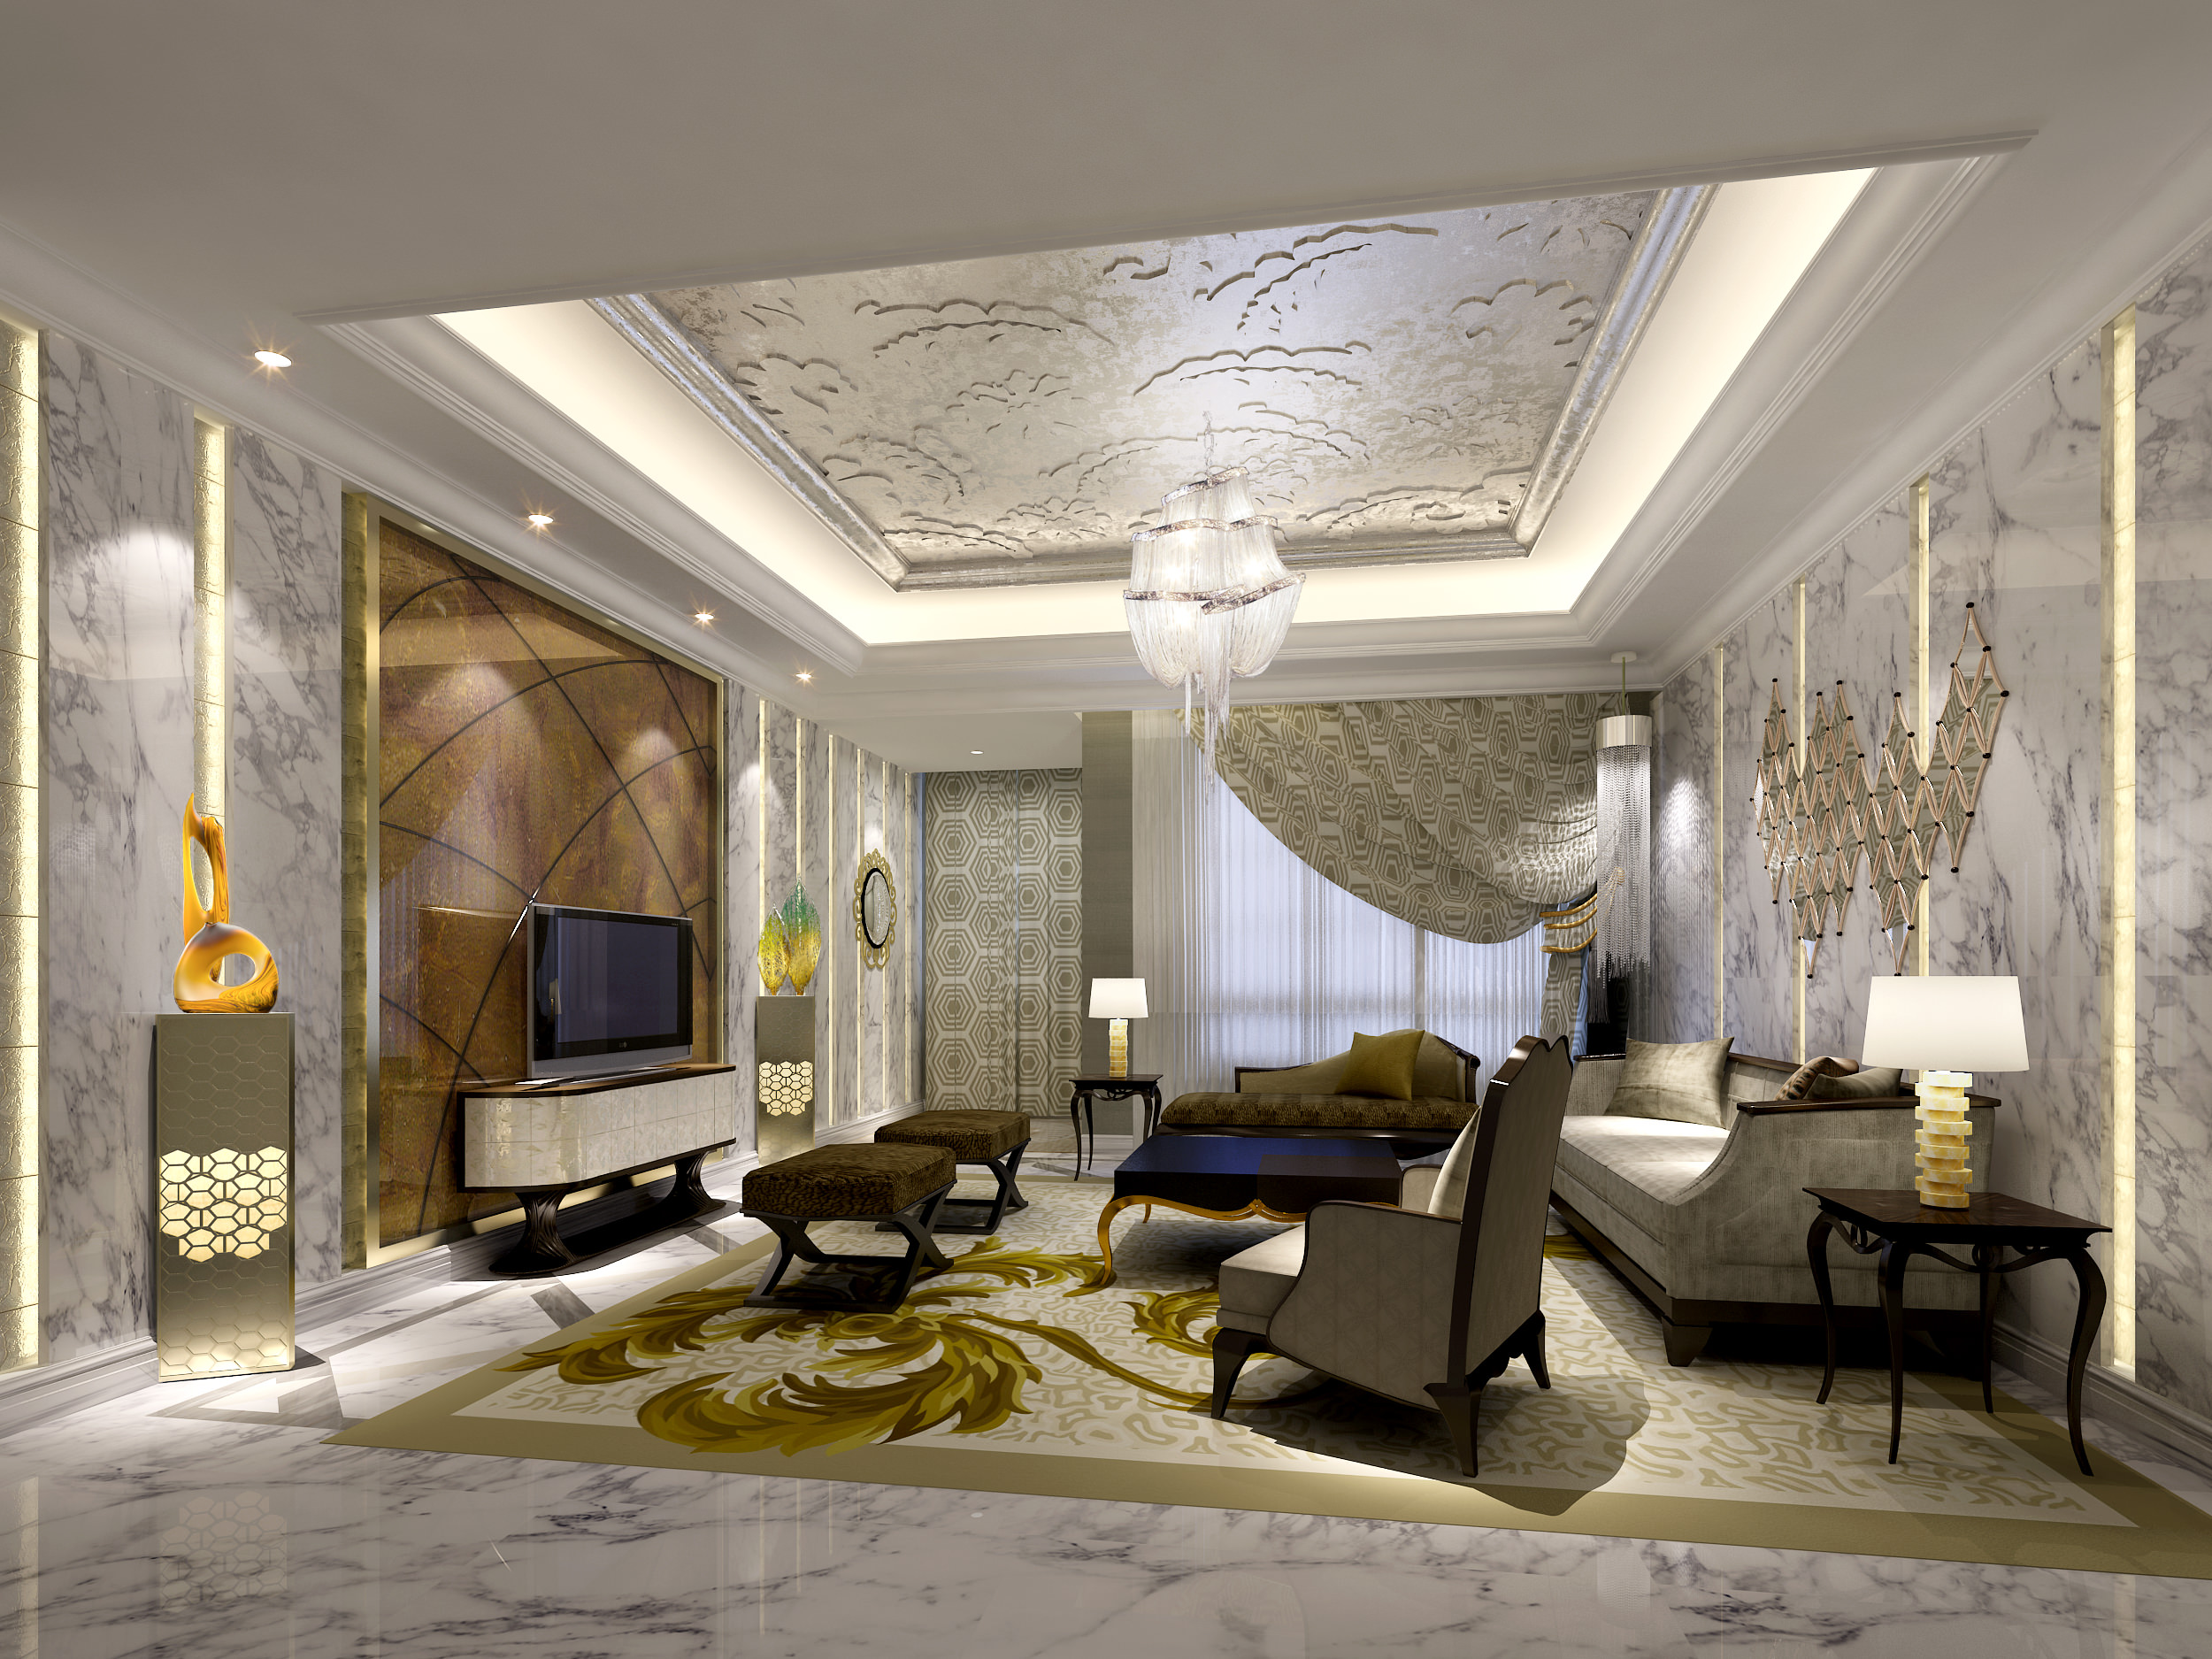 Luxury living room 3d model max for Luxury home models